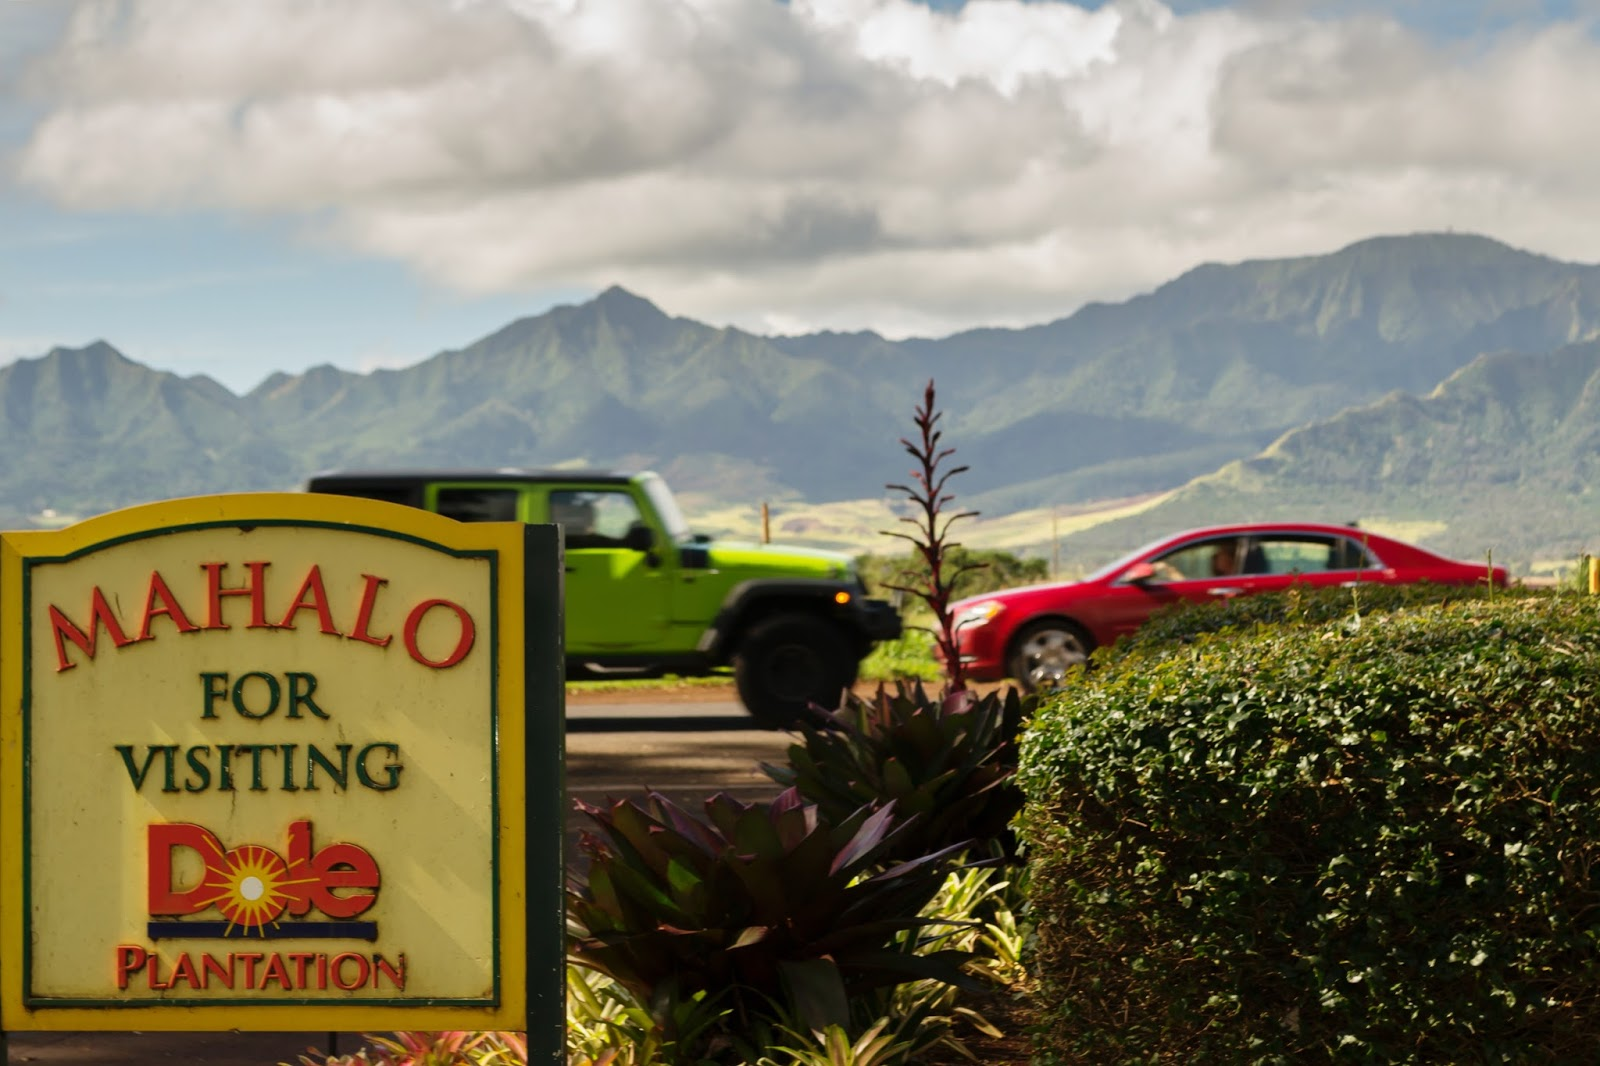 Dole Plantation in Oahu